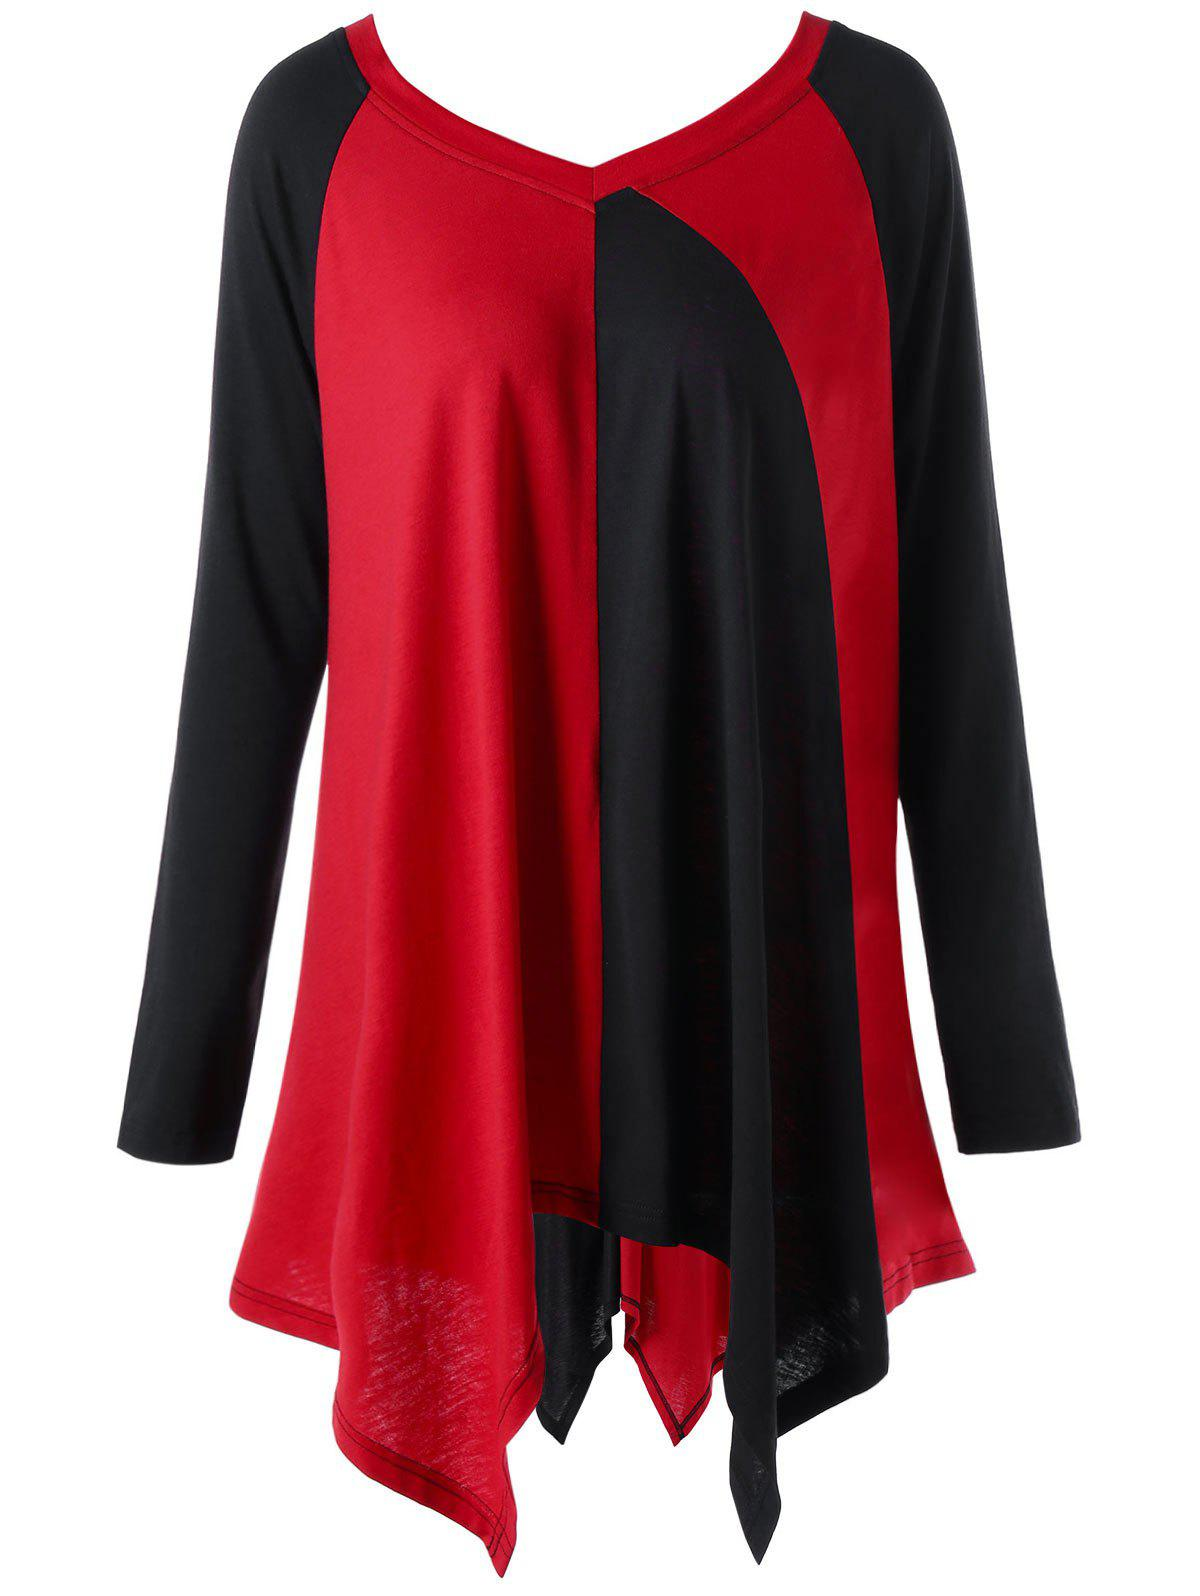 Plus Size Color Block Handkerchief T Shirt Red Black Xl